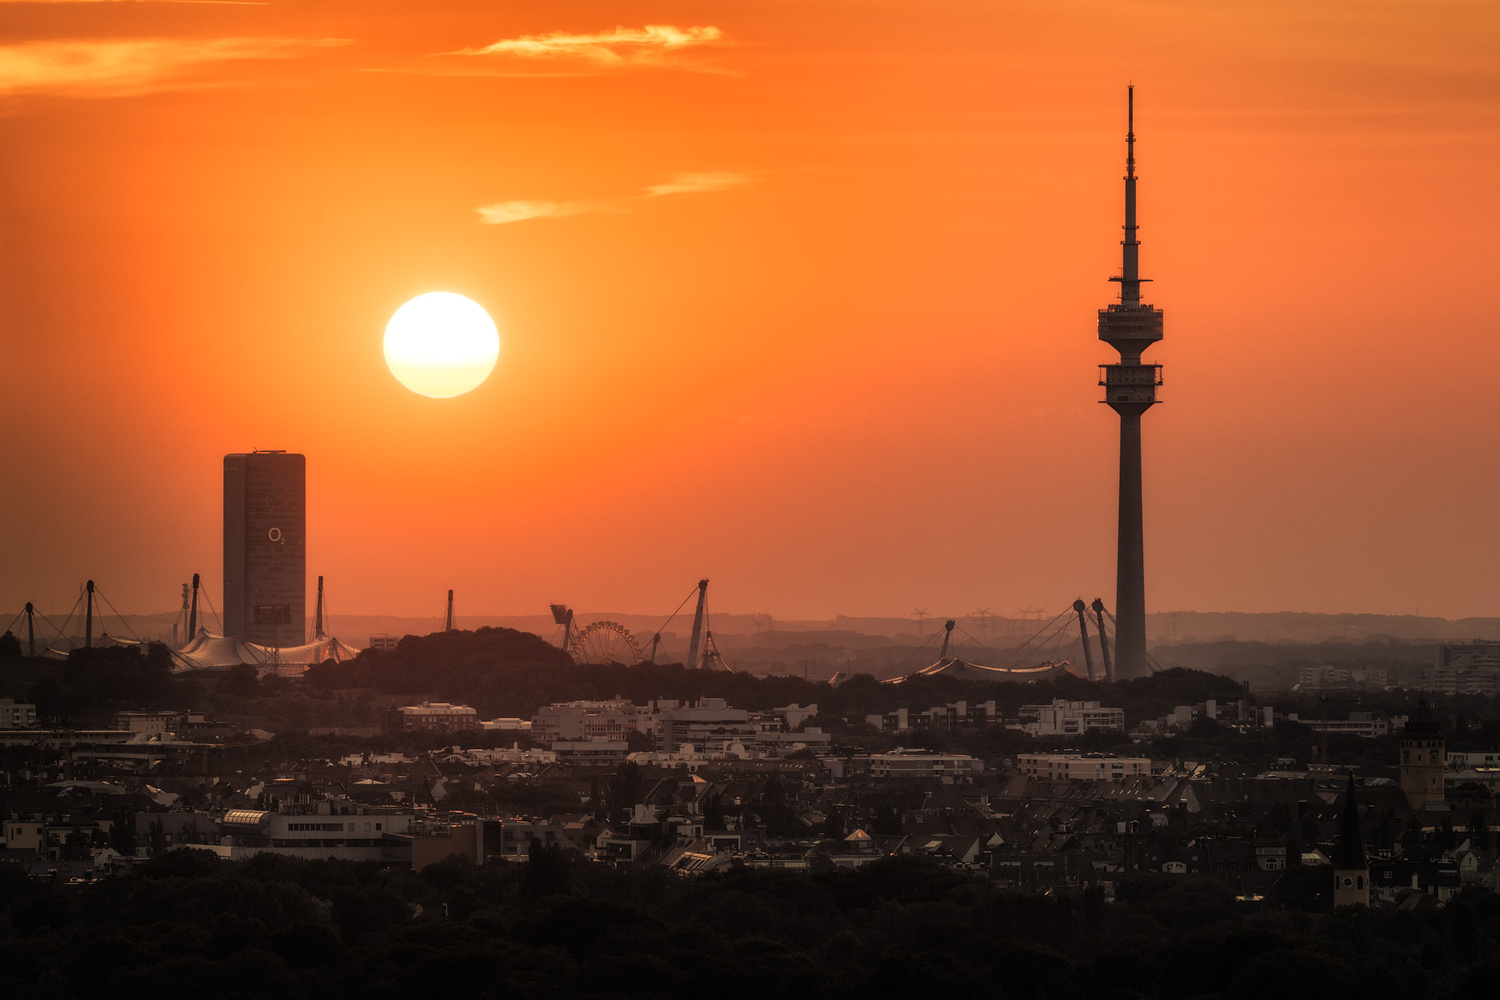 Skyline and The Olympic Tower | Munich, Germany by Nico Trinkhaus